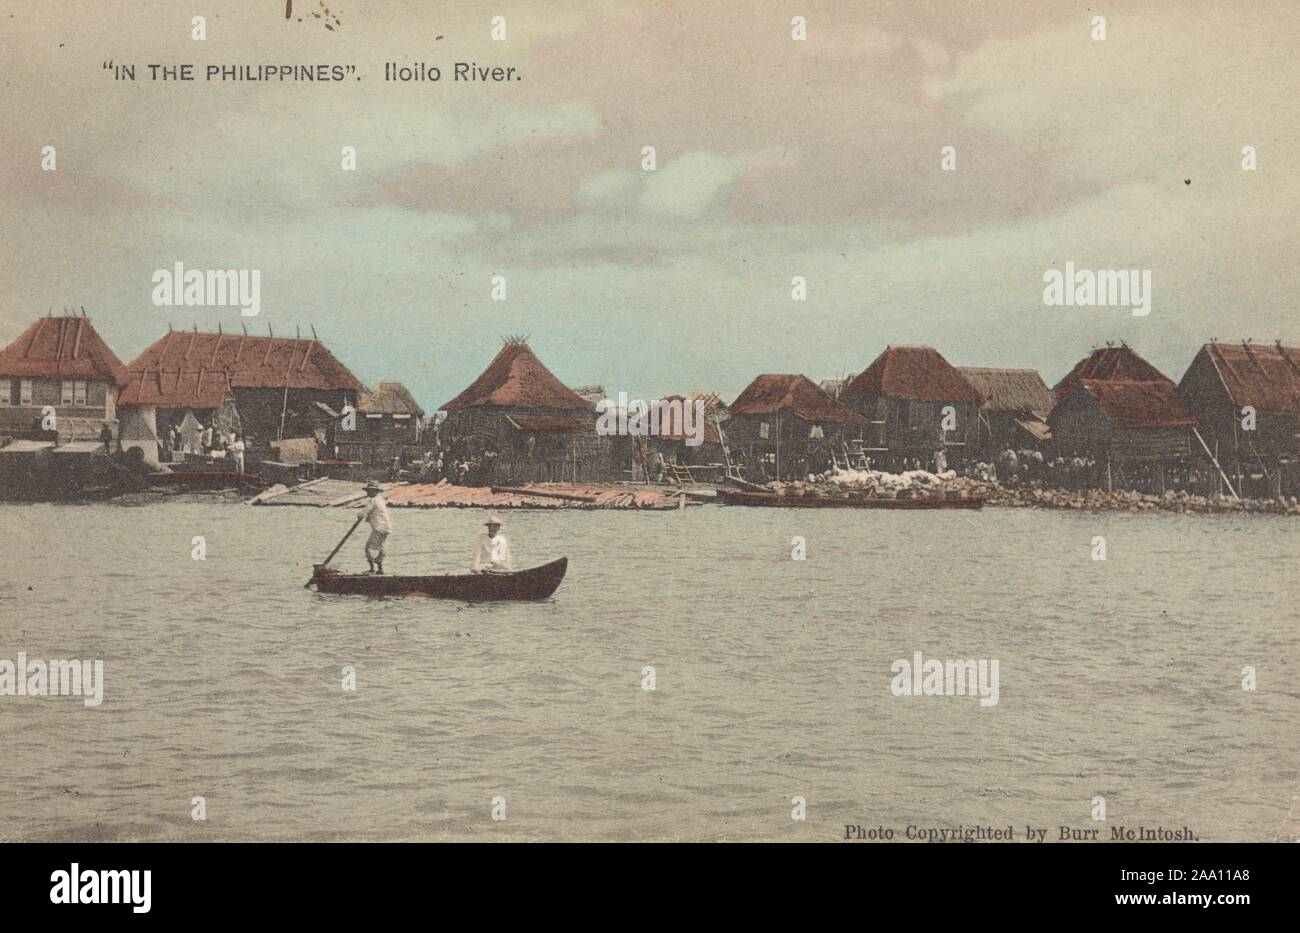 Illustrated postcard of a boat with two fishermen floating along Iloilo River, with thatched roof houses along the river bank, Panay Island, the Philippines, by photographer Burr McIntosh, published by H. Hagemeister Co, 1905. From the New York Public Library. () Stock Photo